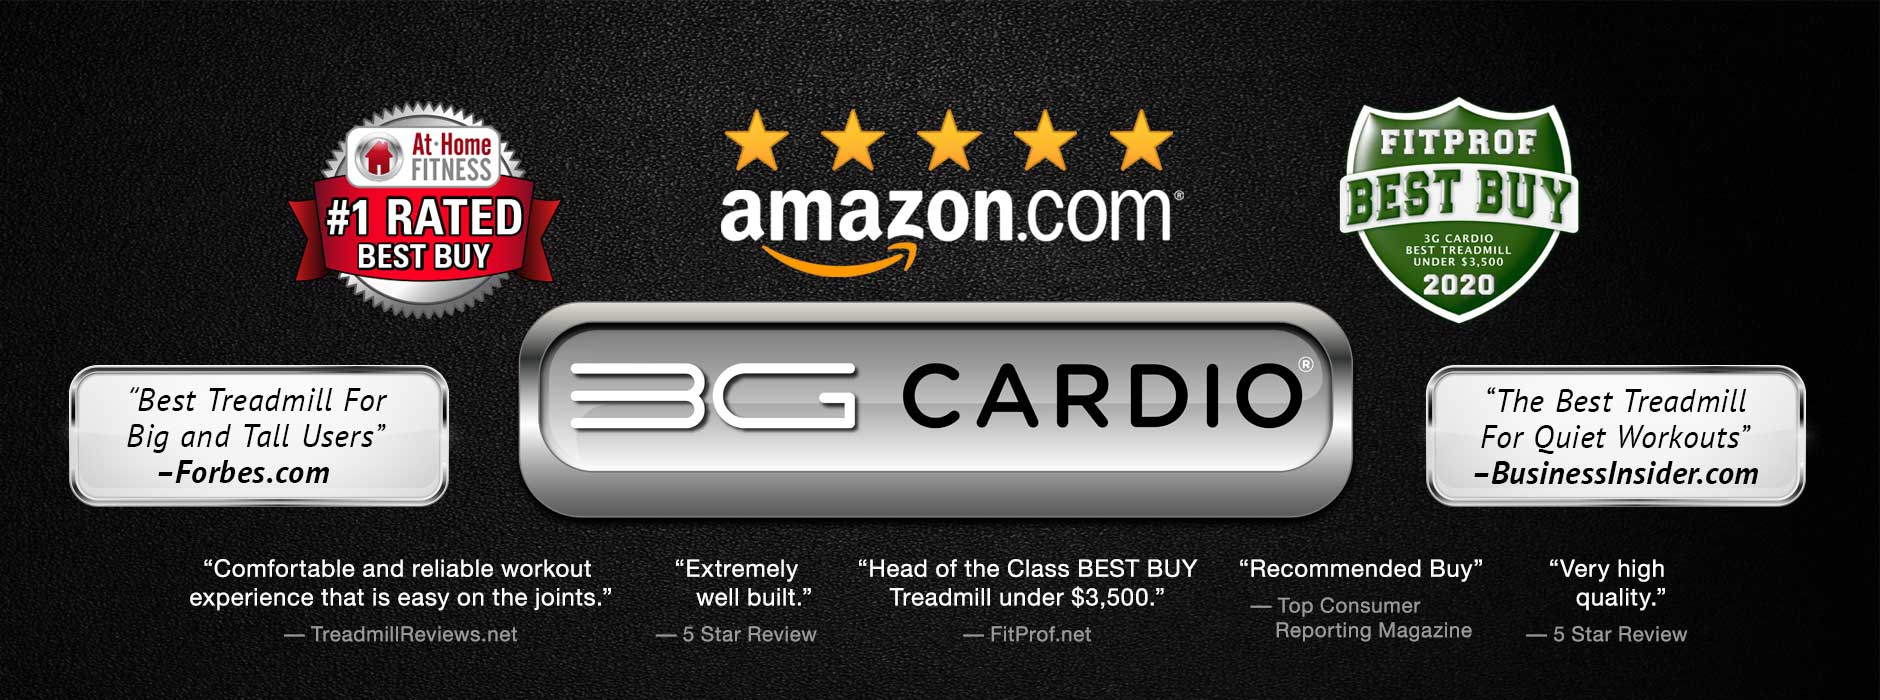 3G Cardio Fitness Equipment Reviews